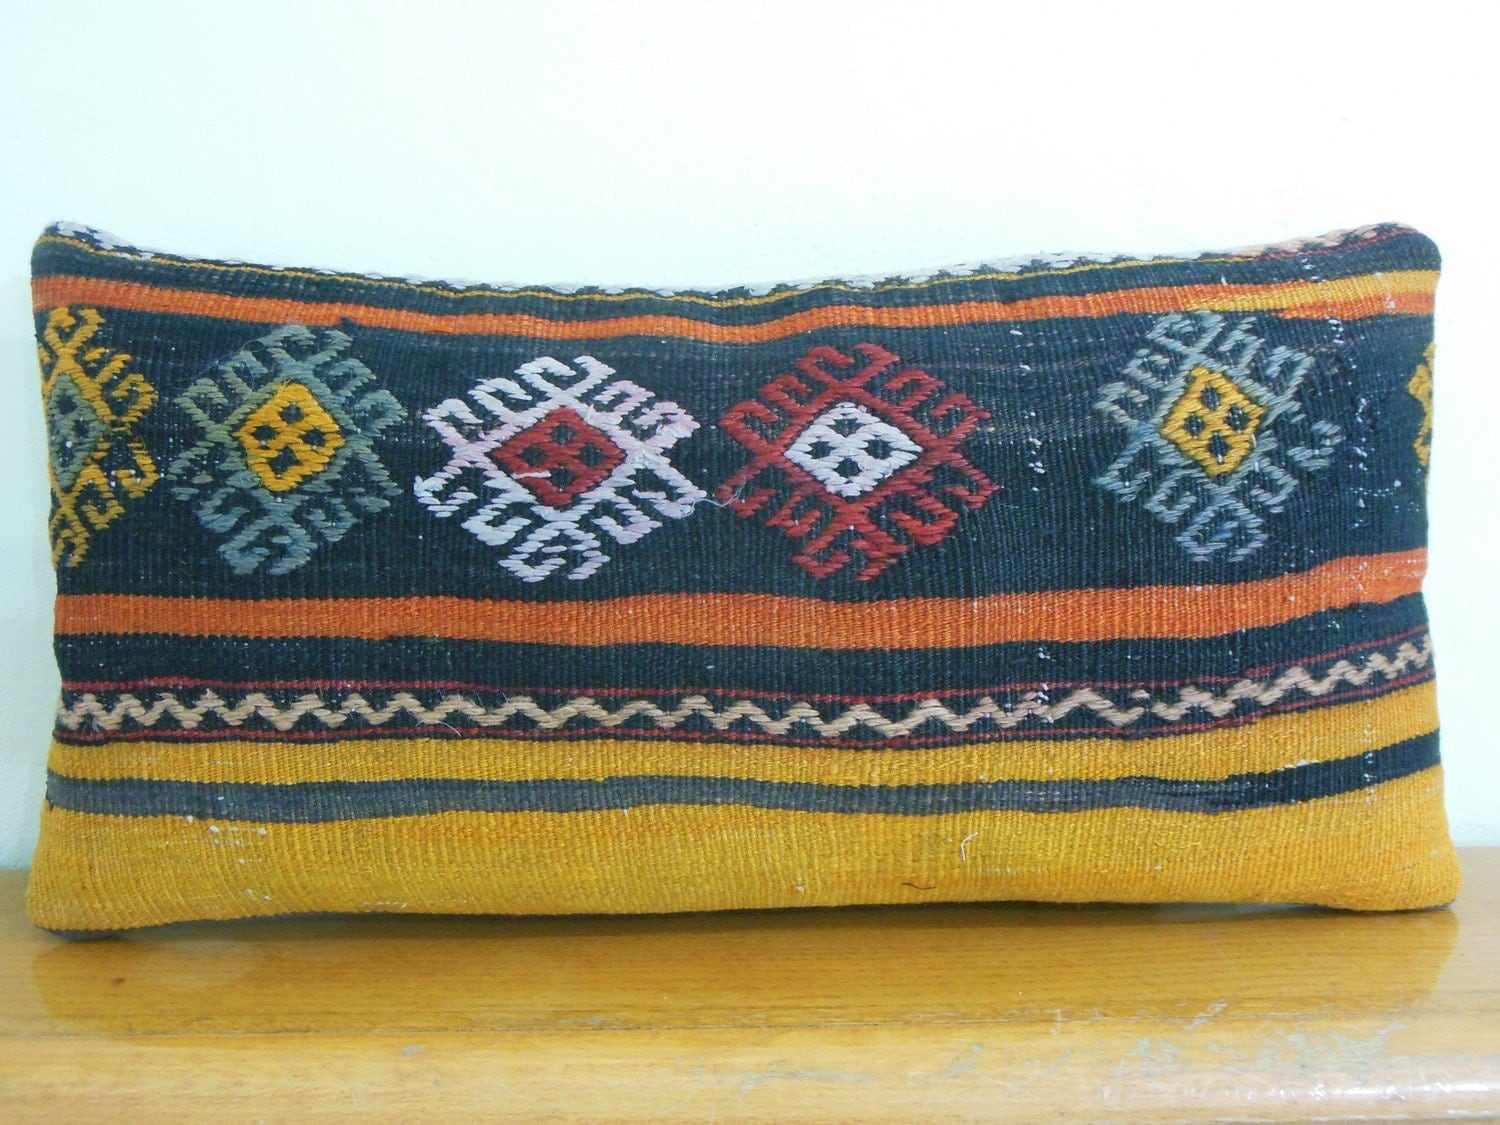 Turkish Kilim Throw Pillows : Turkish cushion decorative throw pillow kilim pillows